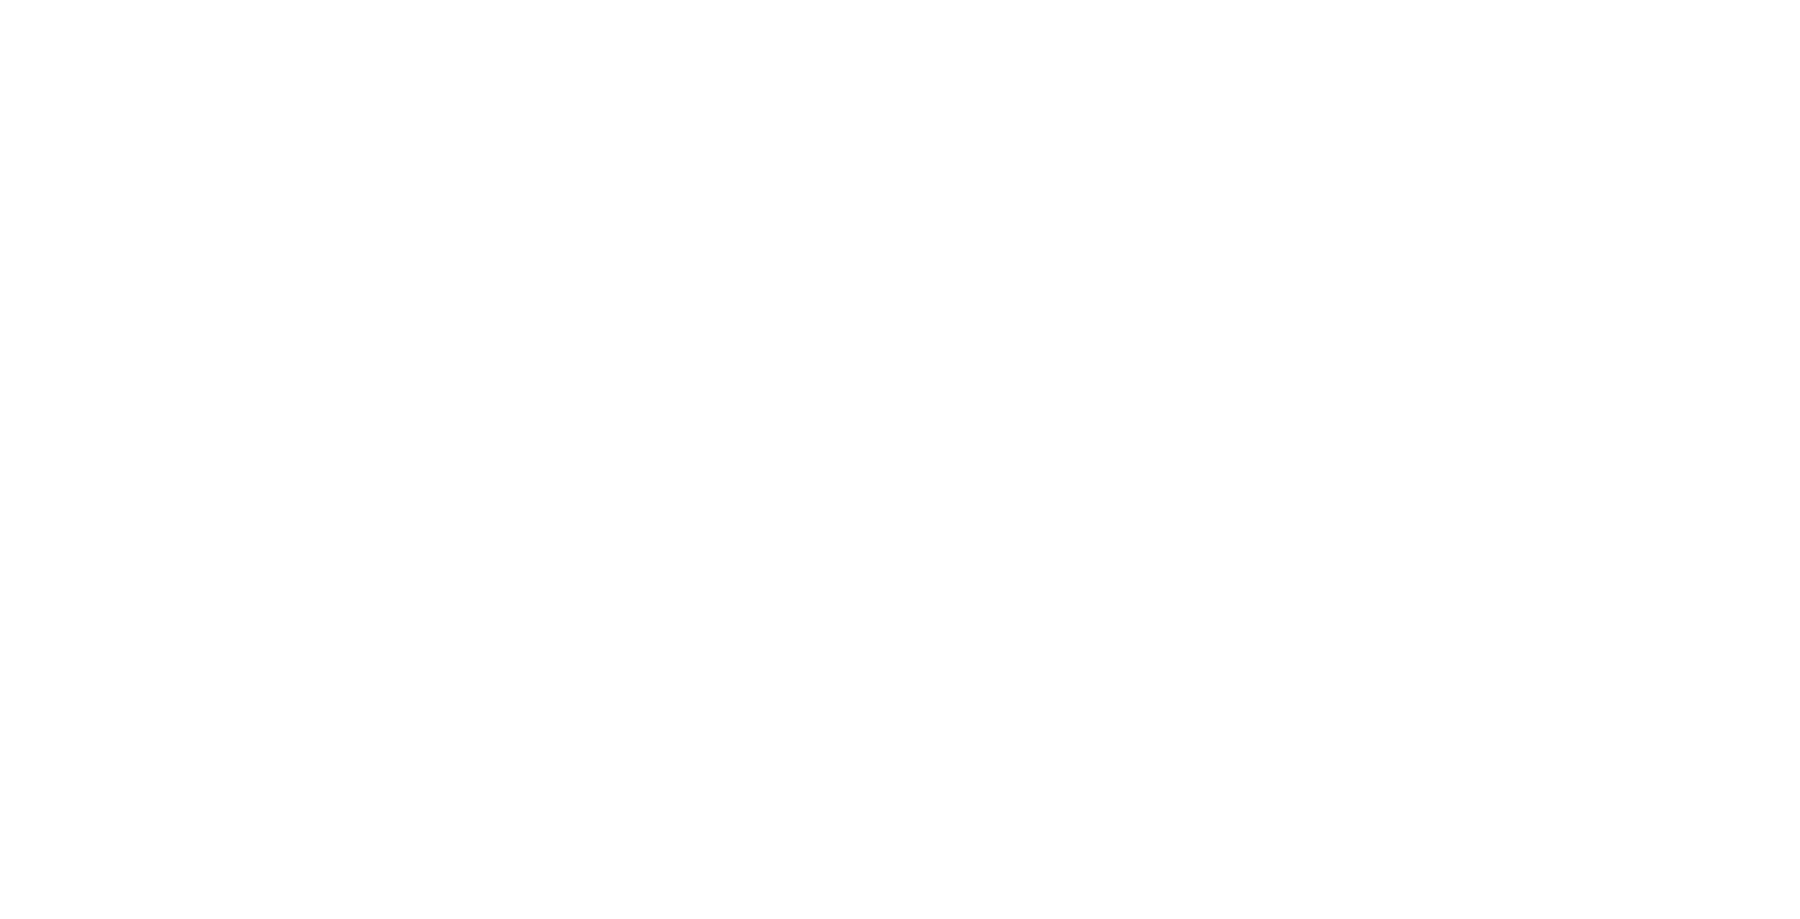 Ready to transform people's lives?